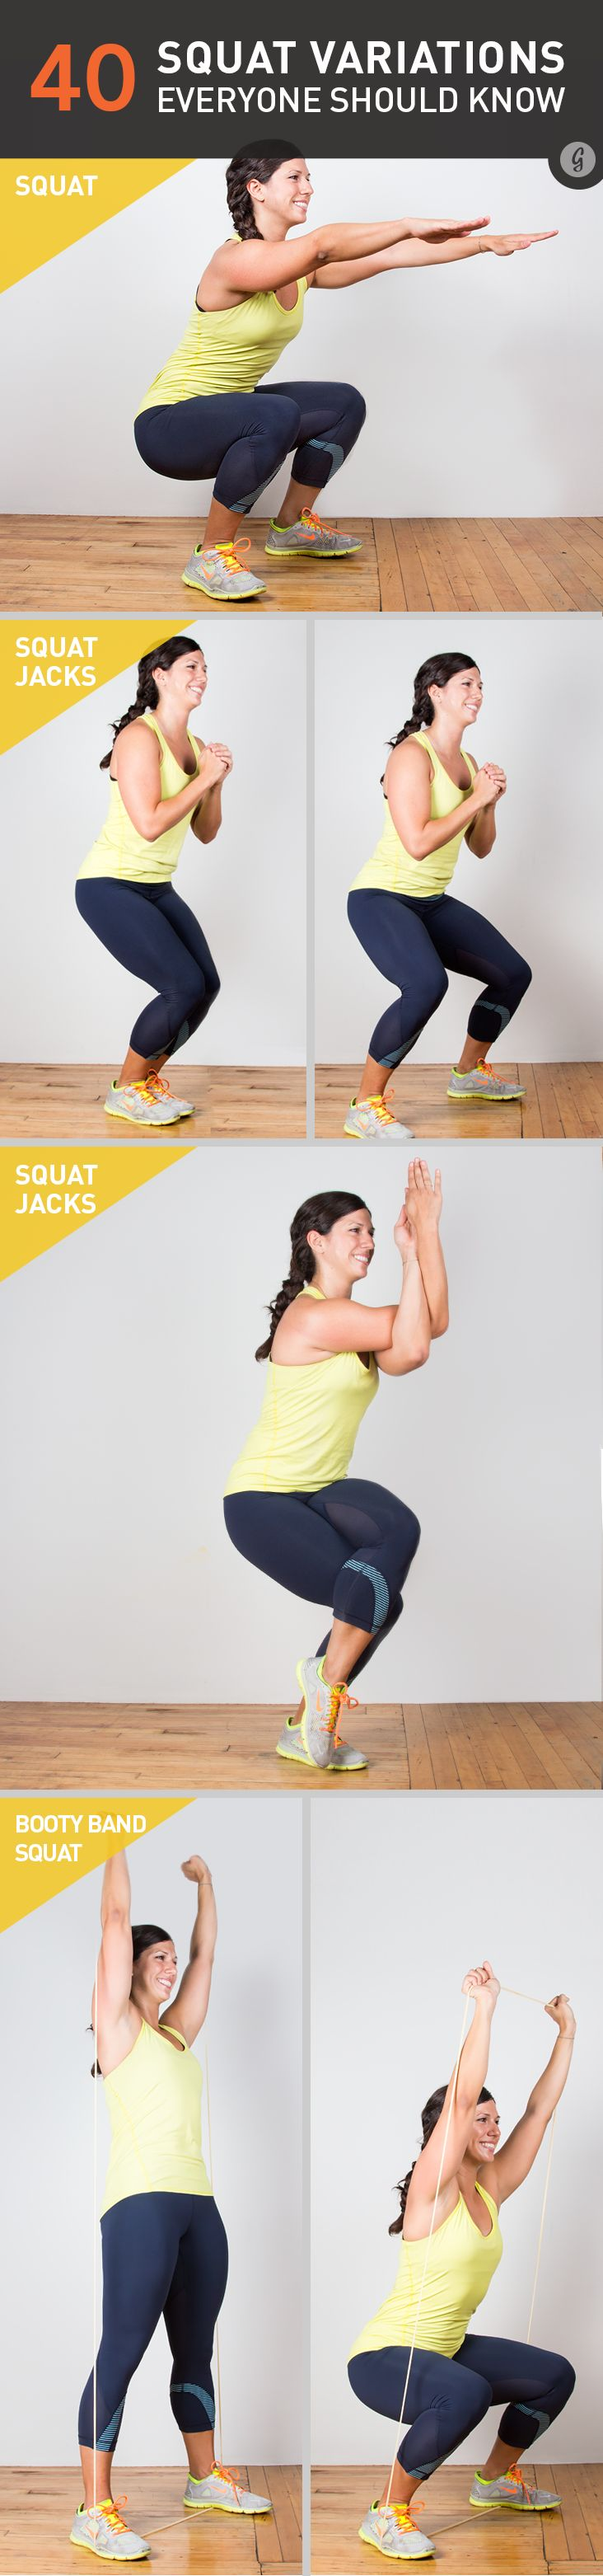 Don't forget that squats burn so many calories AND works many muscles. (Also, let's get that booty )